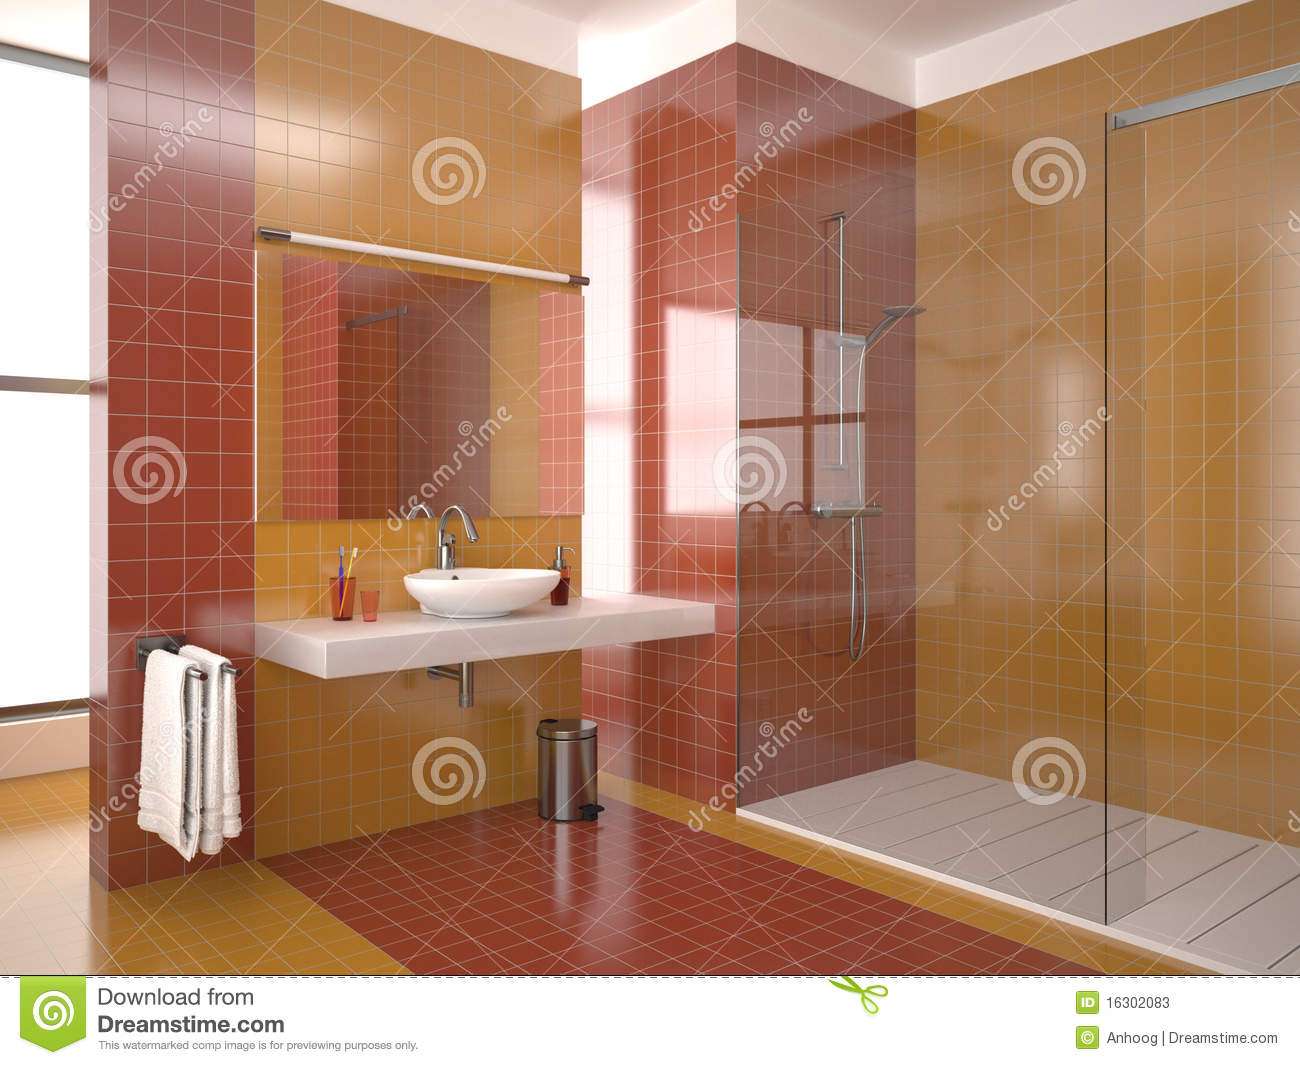 Baños Modernos Rojos:Orange and Red Bathroom Tile